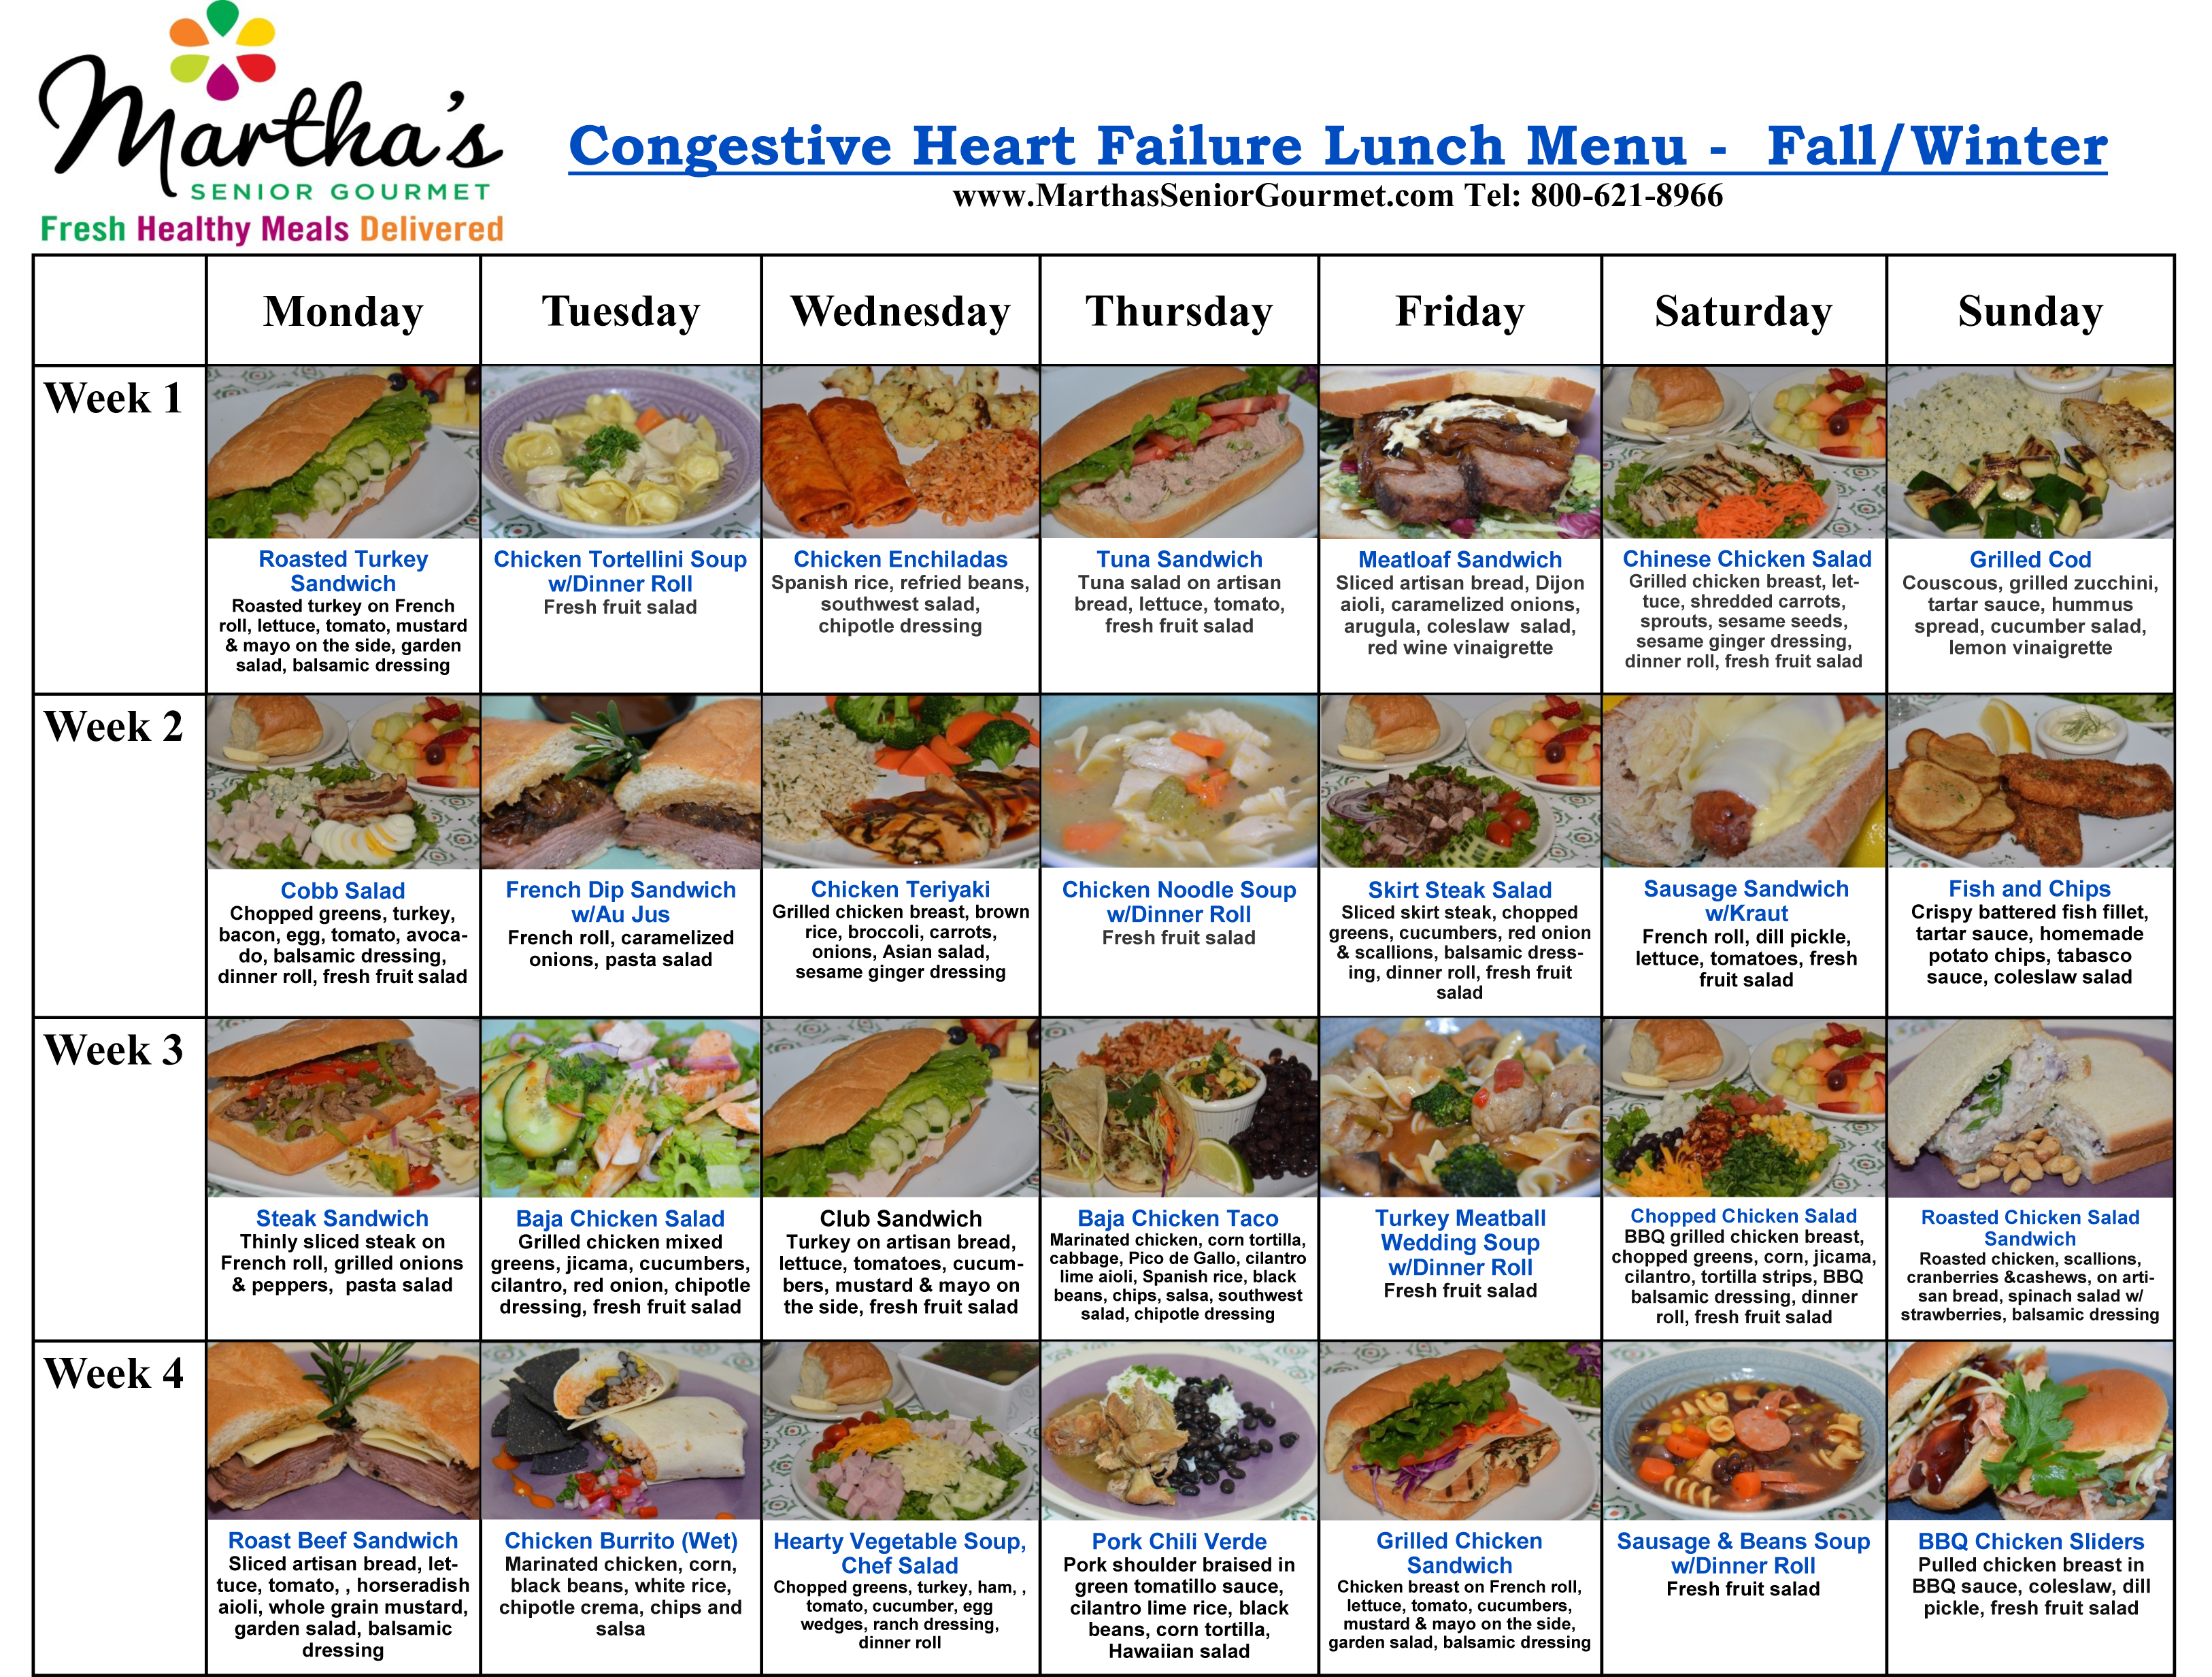 Martha's Senior Gourmet Congestive Heart Failure Lunch Menu - Fall/Winter